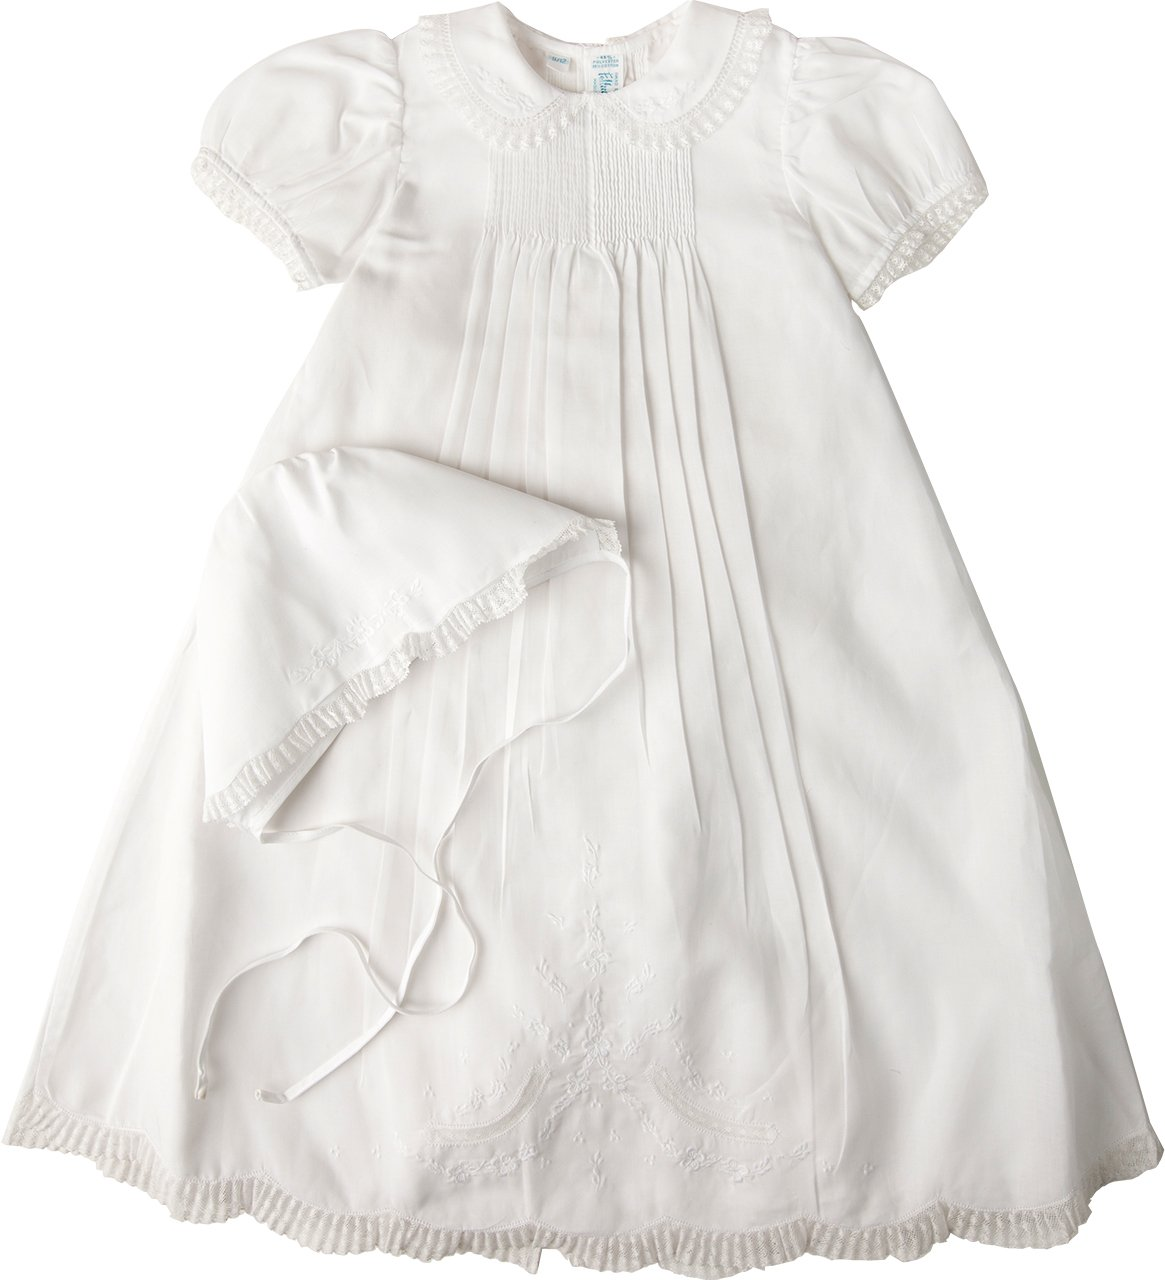 Feltman Brothers Girls Christening Gown White Batiste Lace with Bonnet 9/12m